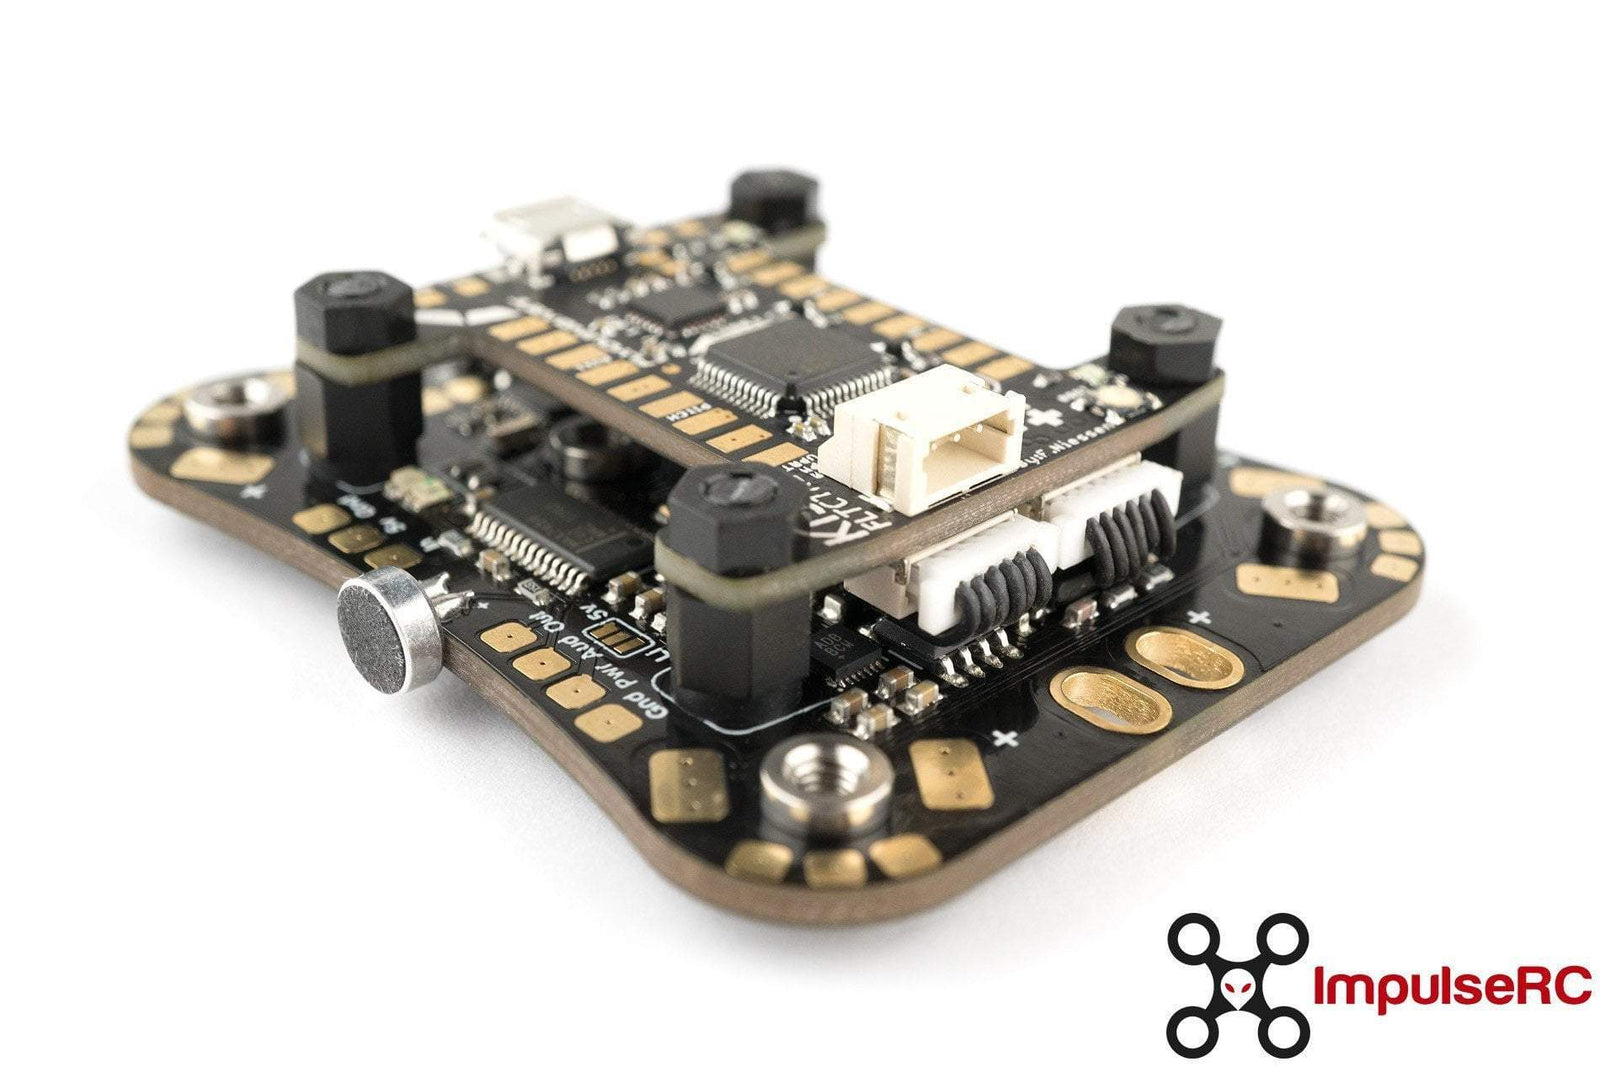 Impulserc Mr Steele Alien Pdb Kit For Kiss With Osd And Mic Phaser Fpv Pin Electret Microphone Amplifier Circuit Schematic On Pinterest